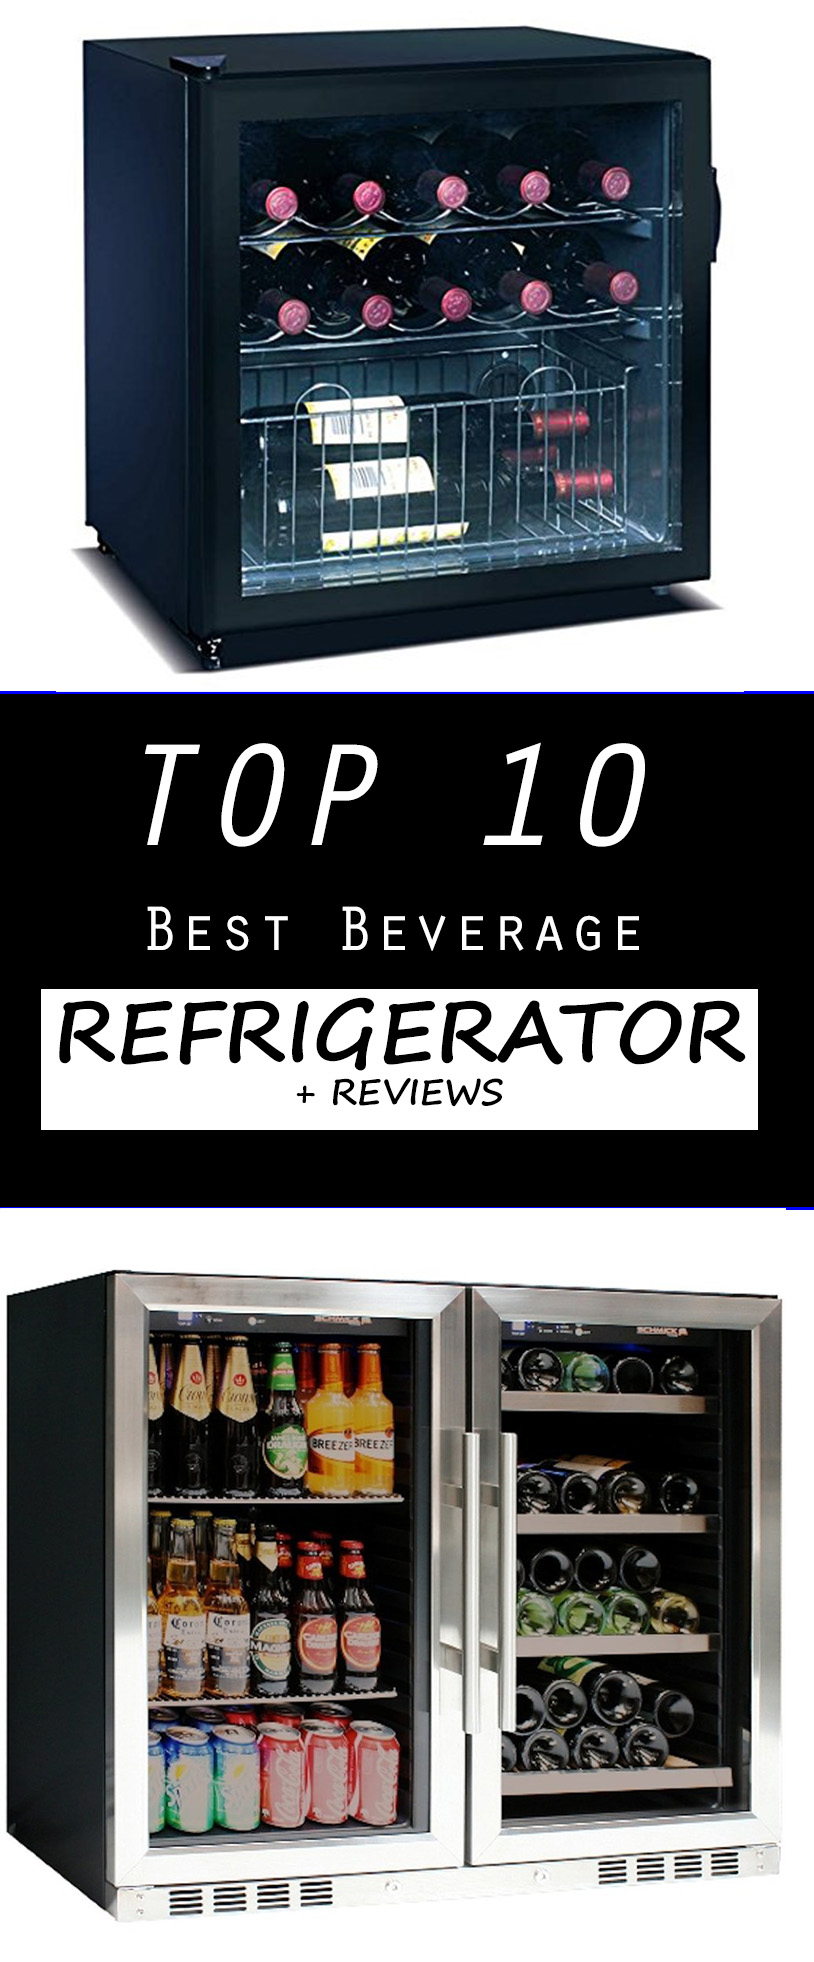 Top 10 Best Beverage Refrigerator Reviews - Top 10 Best Beverage Refrigerator + Reviews